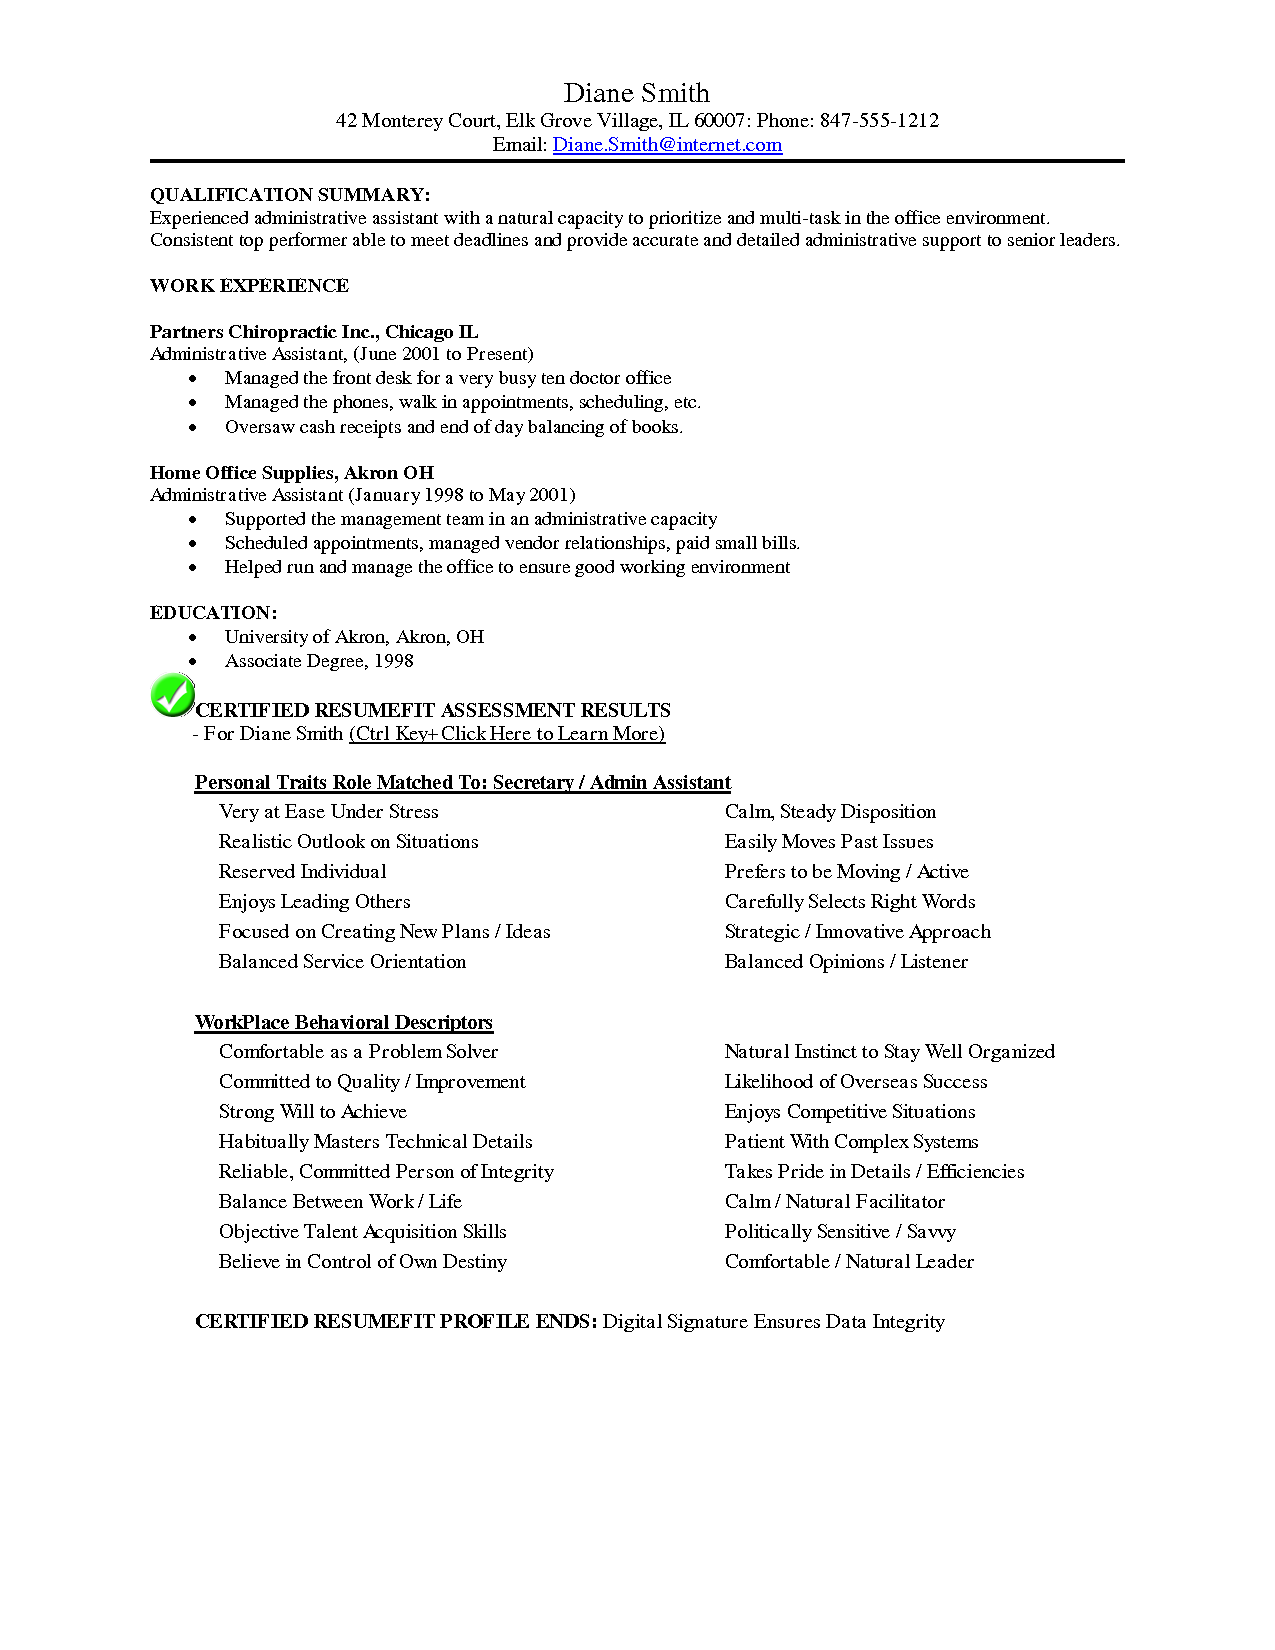 Chiropractic Resume Example  Resumes    Resume